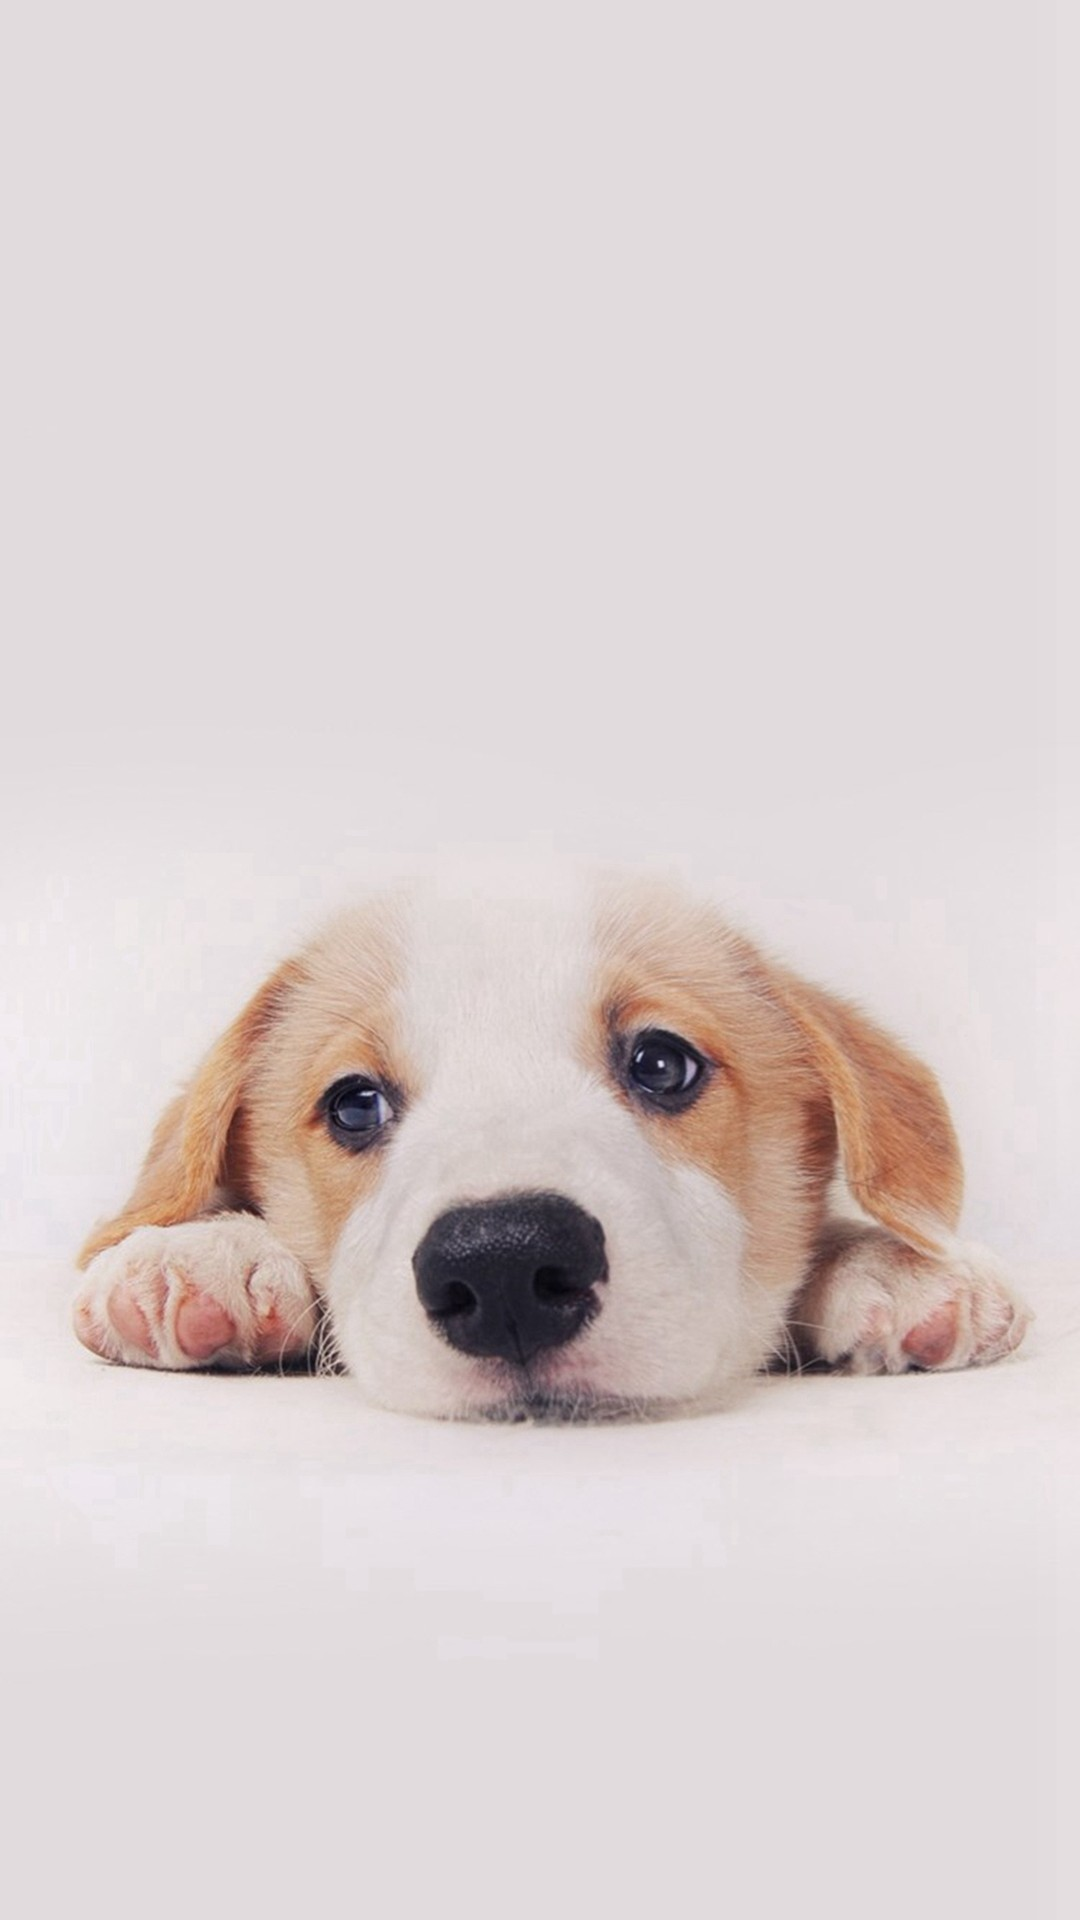 Puppy Wallpaper And Screensavers (53+ Images